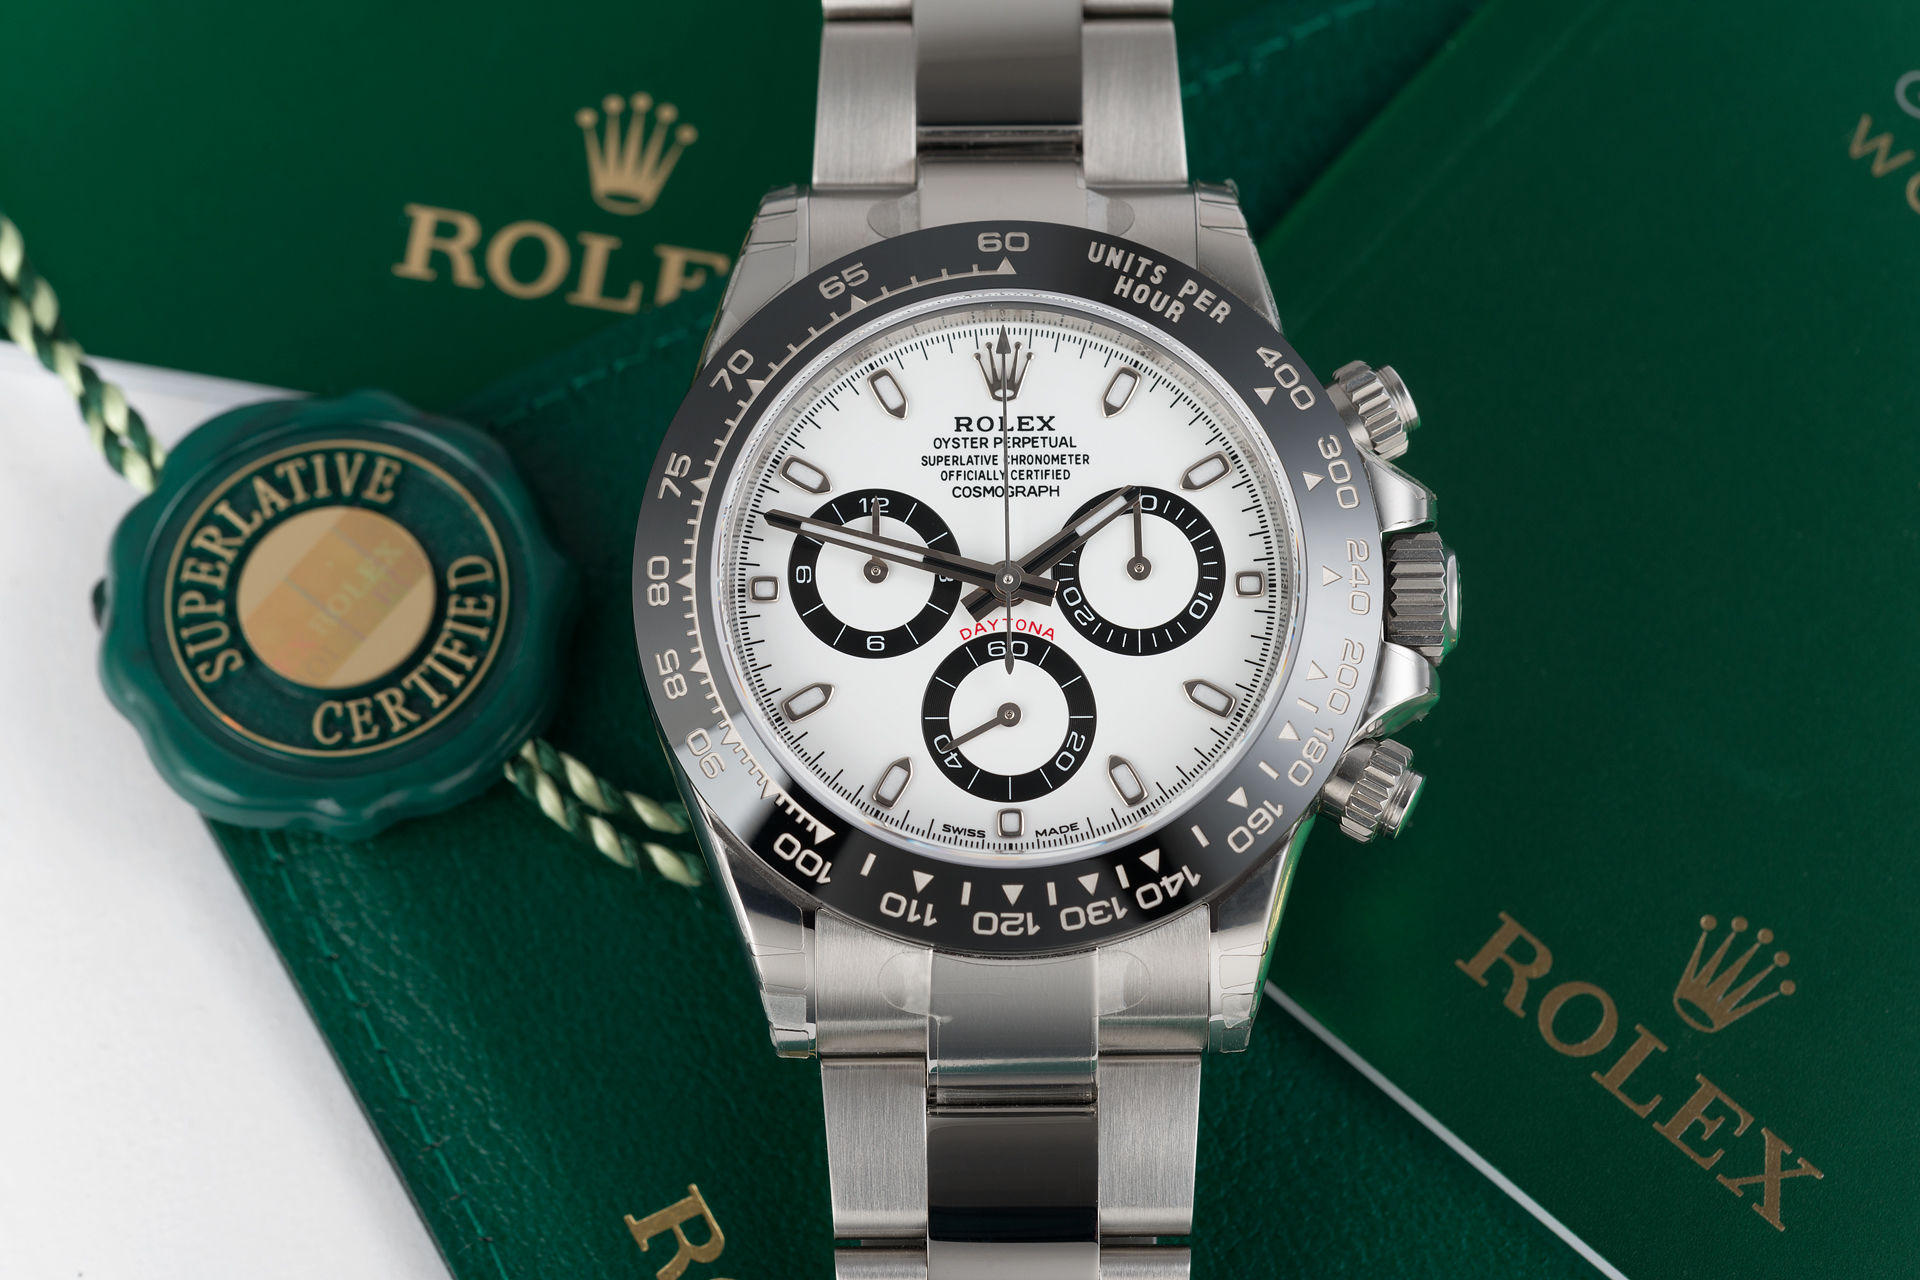 ref 116500LN | Brand New 'Fully Stickered' | Rolex Cosmograph Daytona